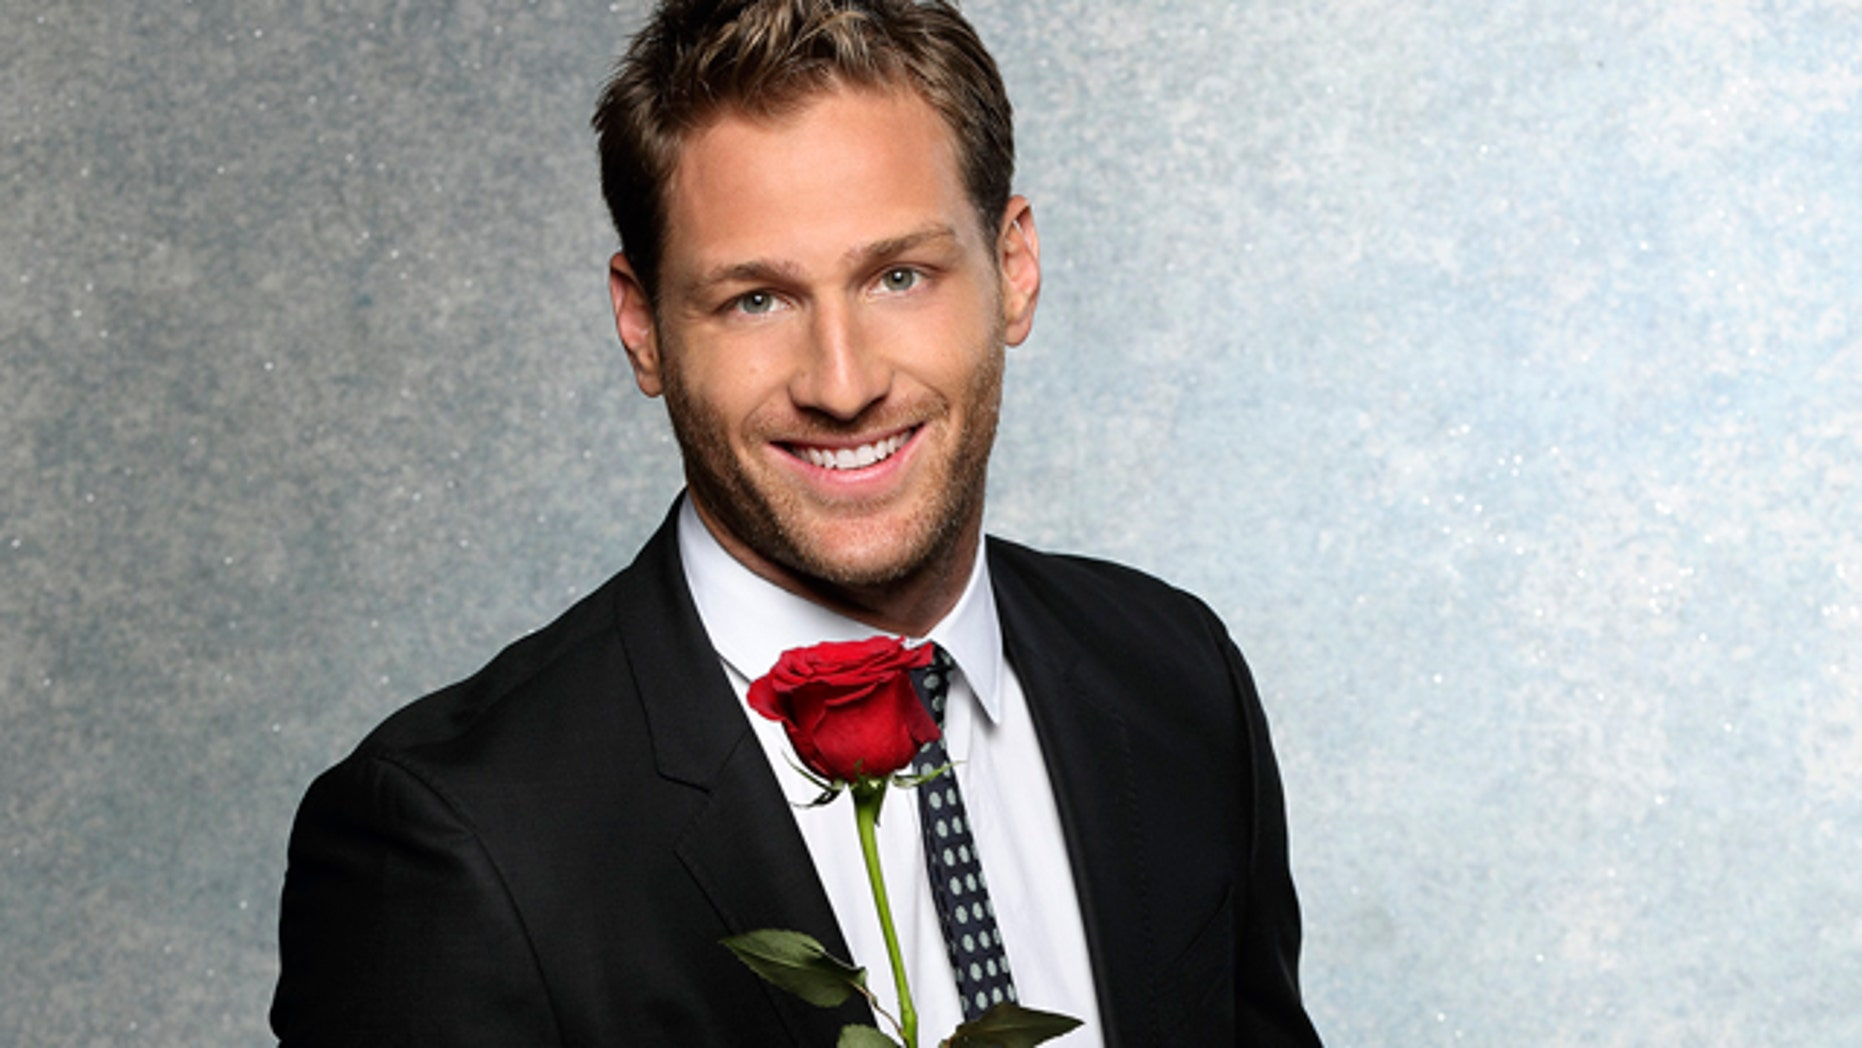 """This undated image released by ABC shows Juan Pablo Galavis, star of the 18th edition of """"The Bachelor"""" airing Mondays on ABC. (AP Photo/ABC, Craig Sjodin)"""